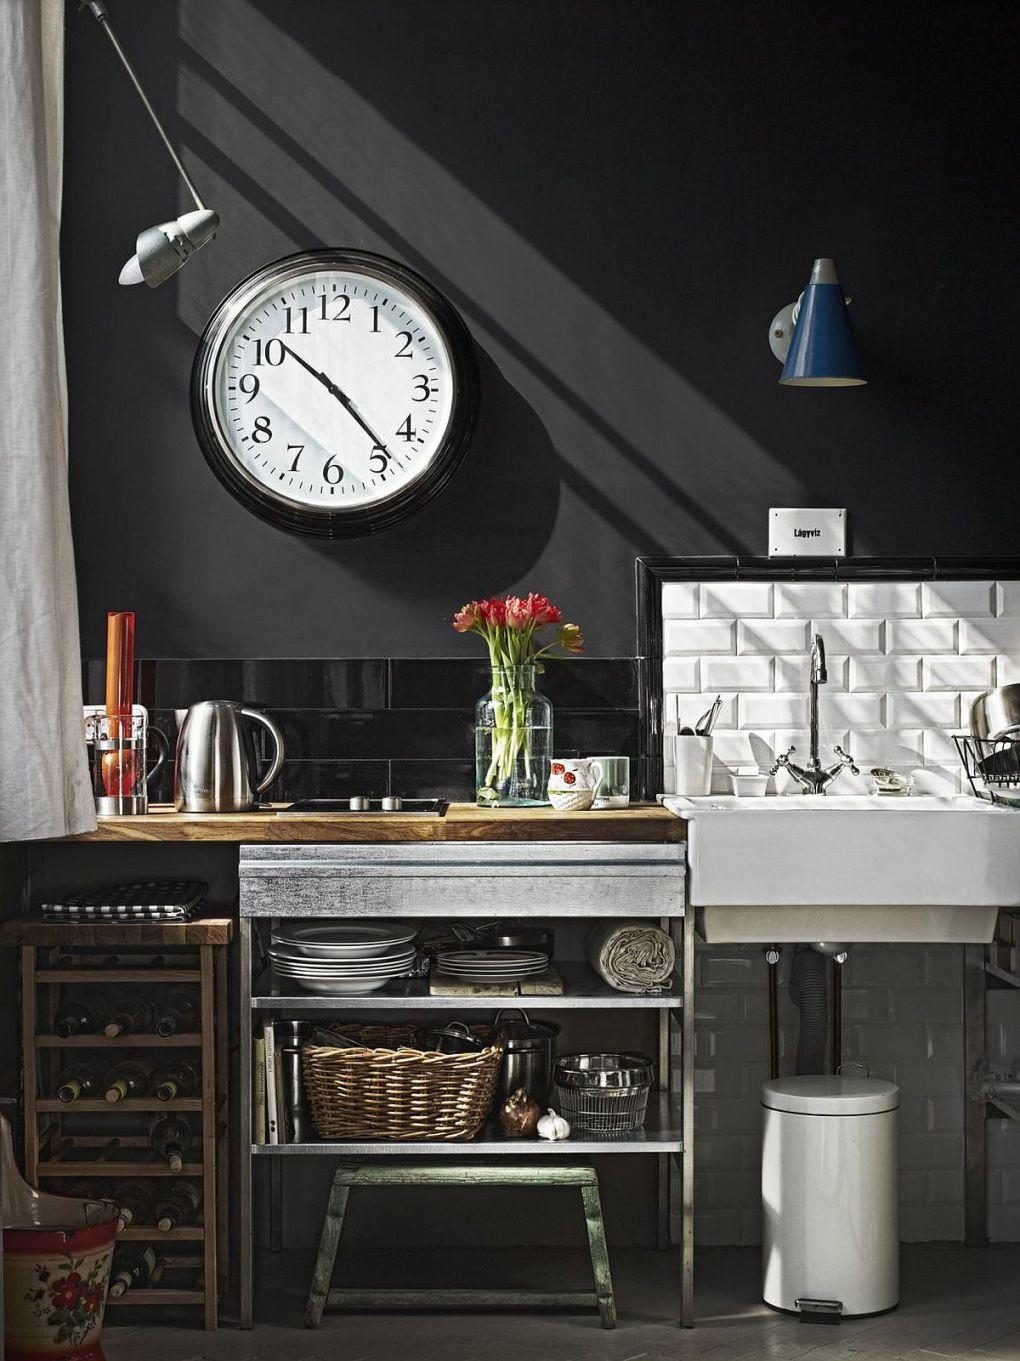 Ressam Evi | Tiny kitchenette for the small Budapest apartment with chalkboard wall 1